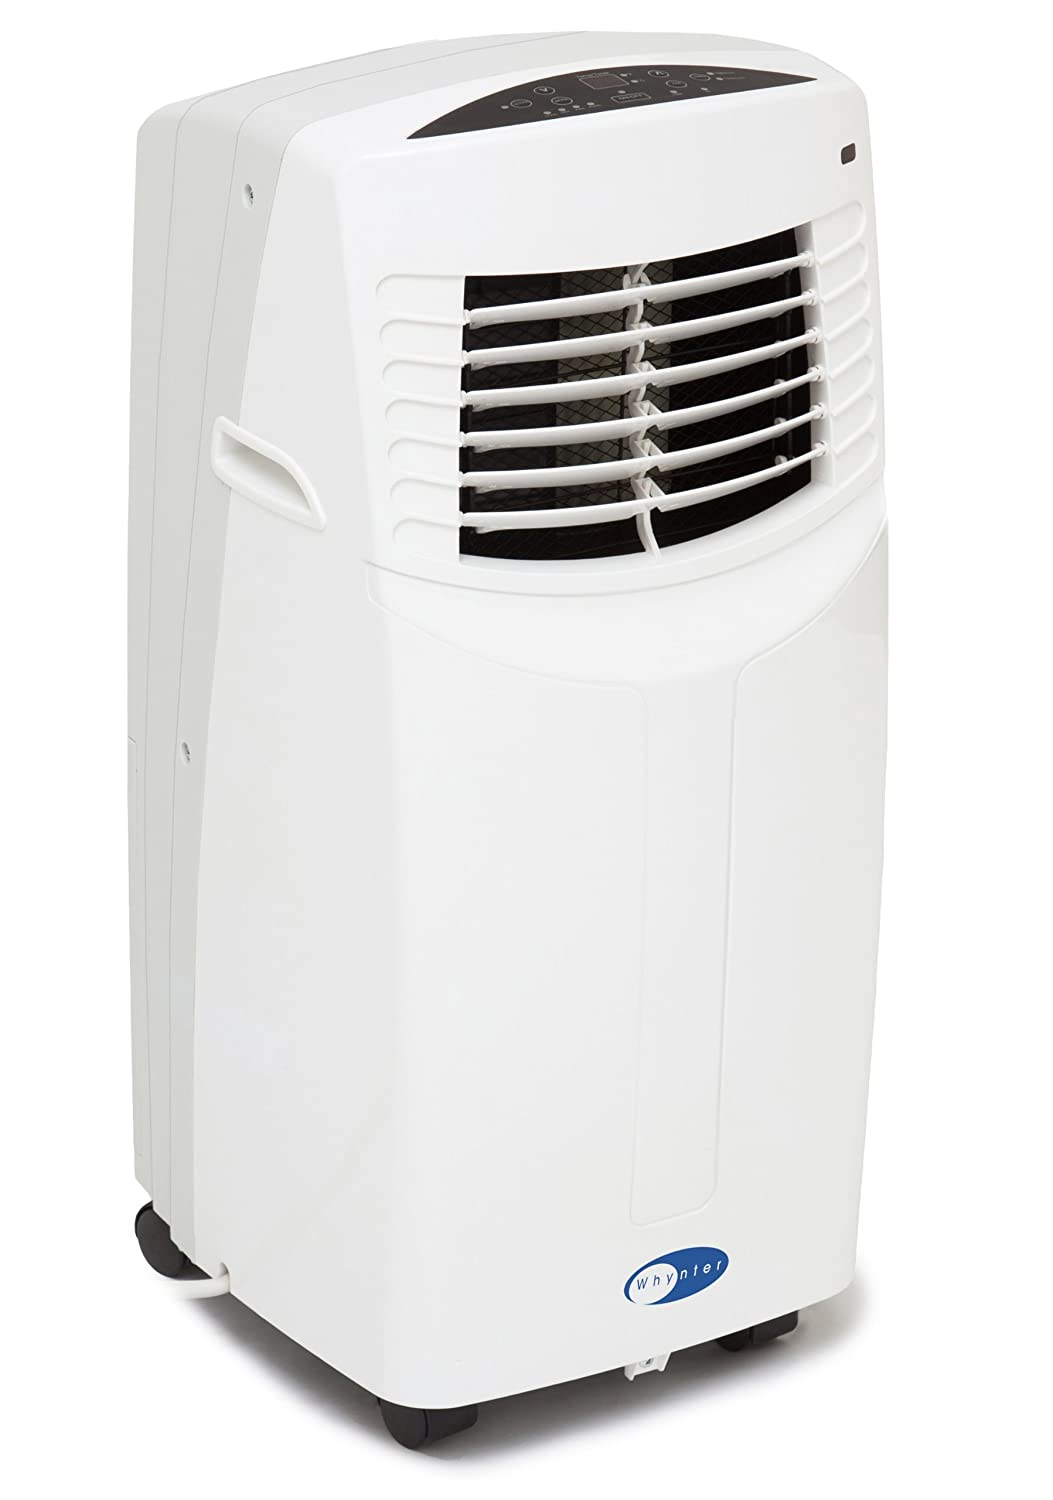 Top 10 Best Portable Air Conditioner Reviews in 2020 6